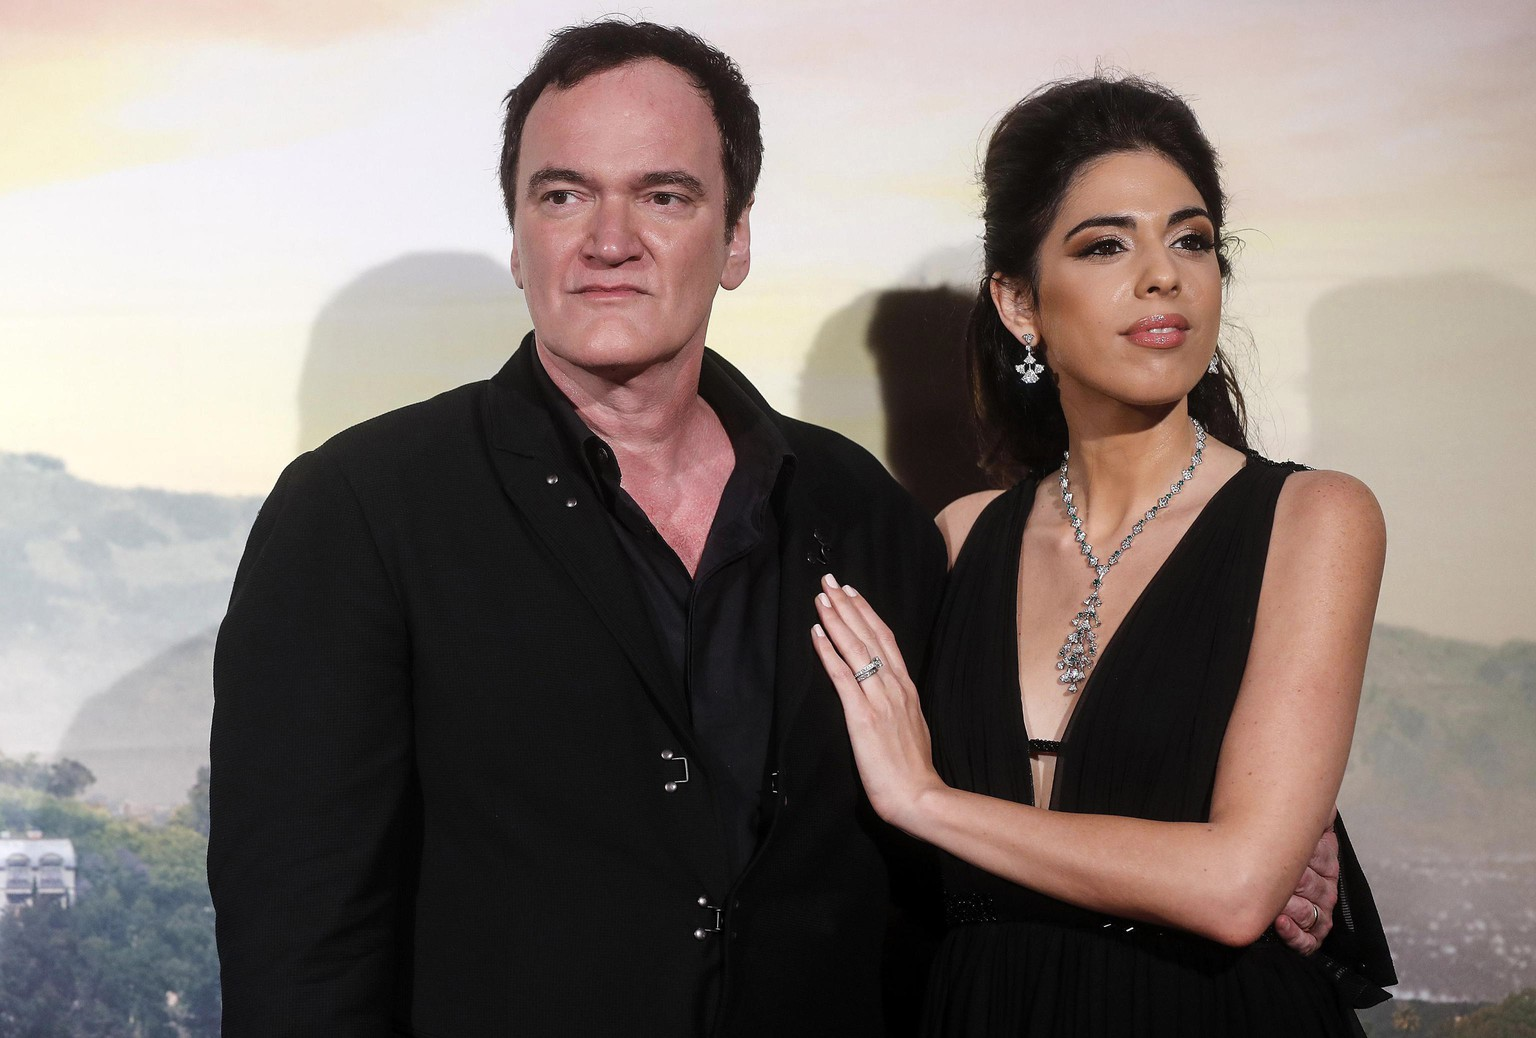 U. S. filmmaker Quentin Tarantino, left, with his wife Daniella Pick, right, attends the Italian Premiere and red carpet of the movie